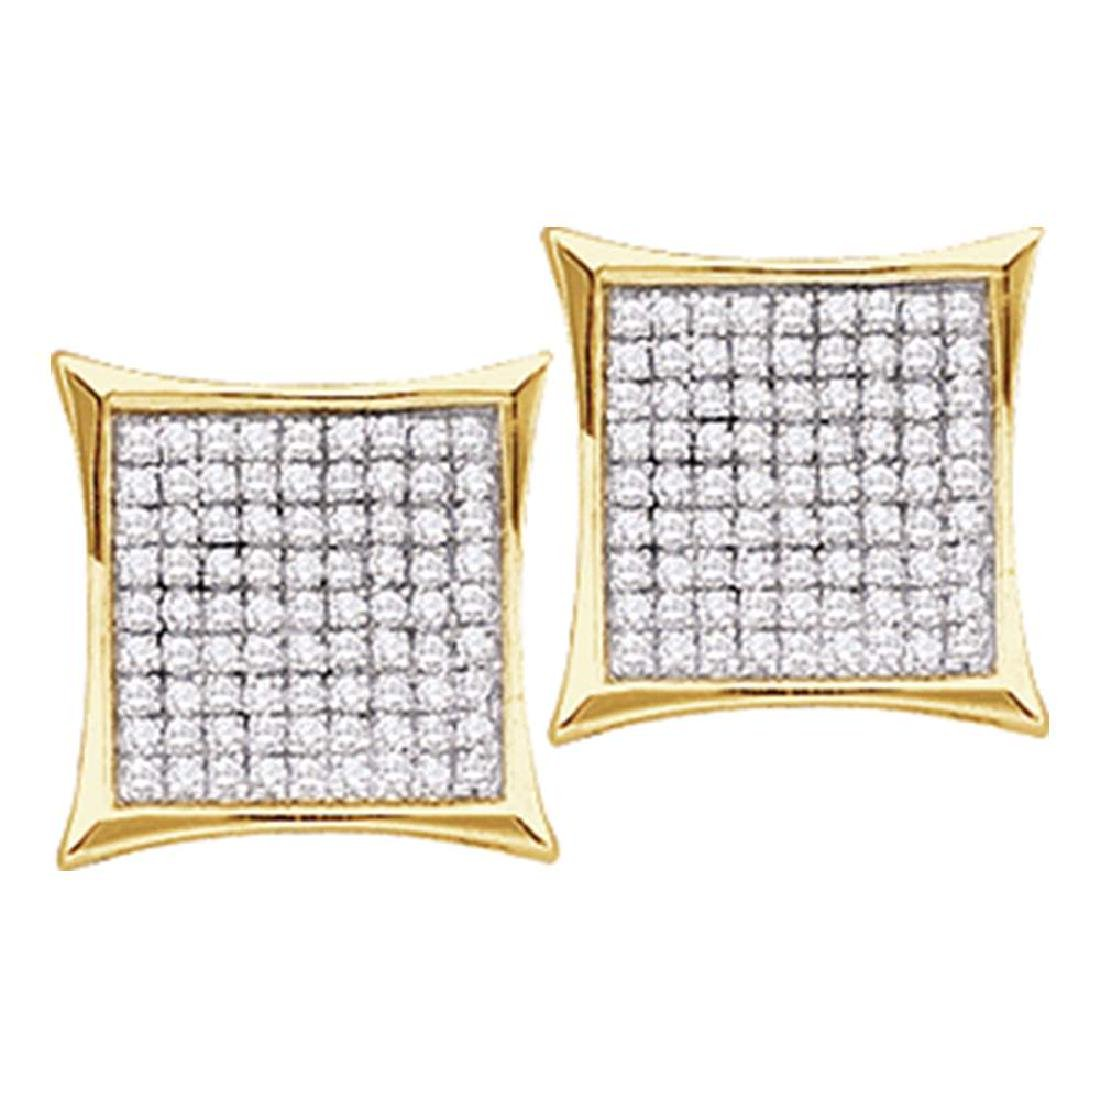 0.23 CTW Diamond Square Cluster Earrings 14KT Yellow